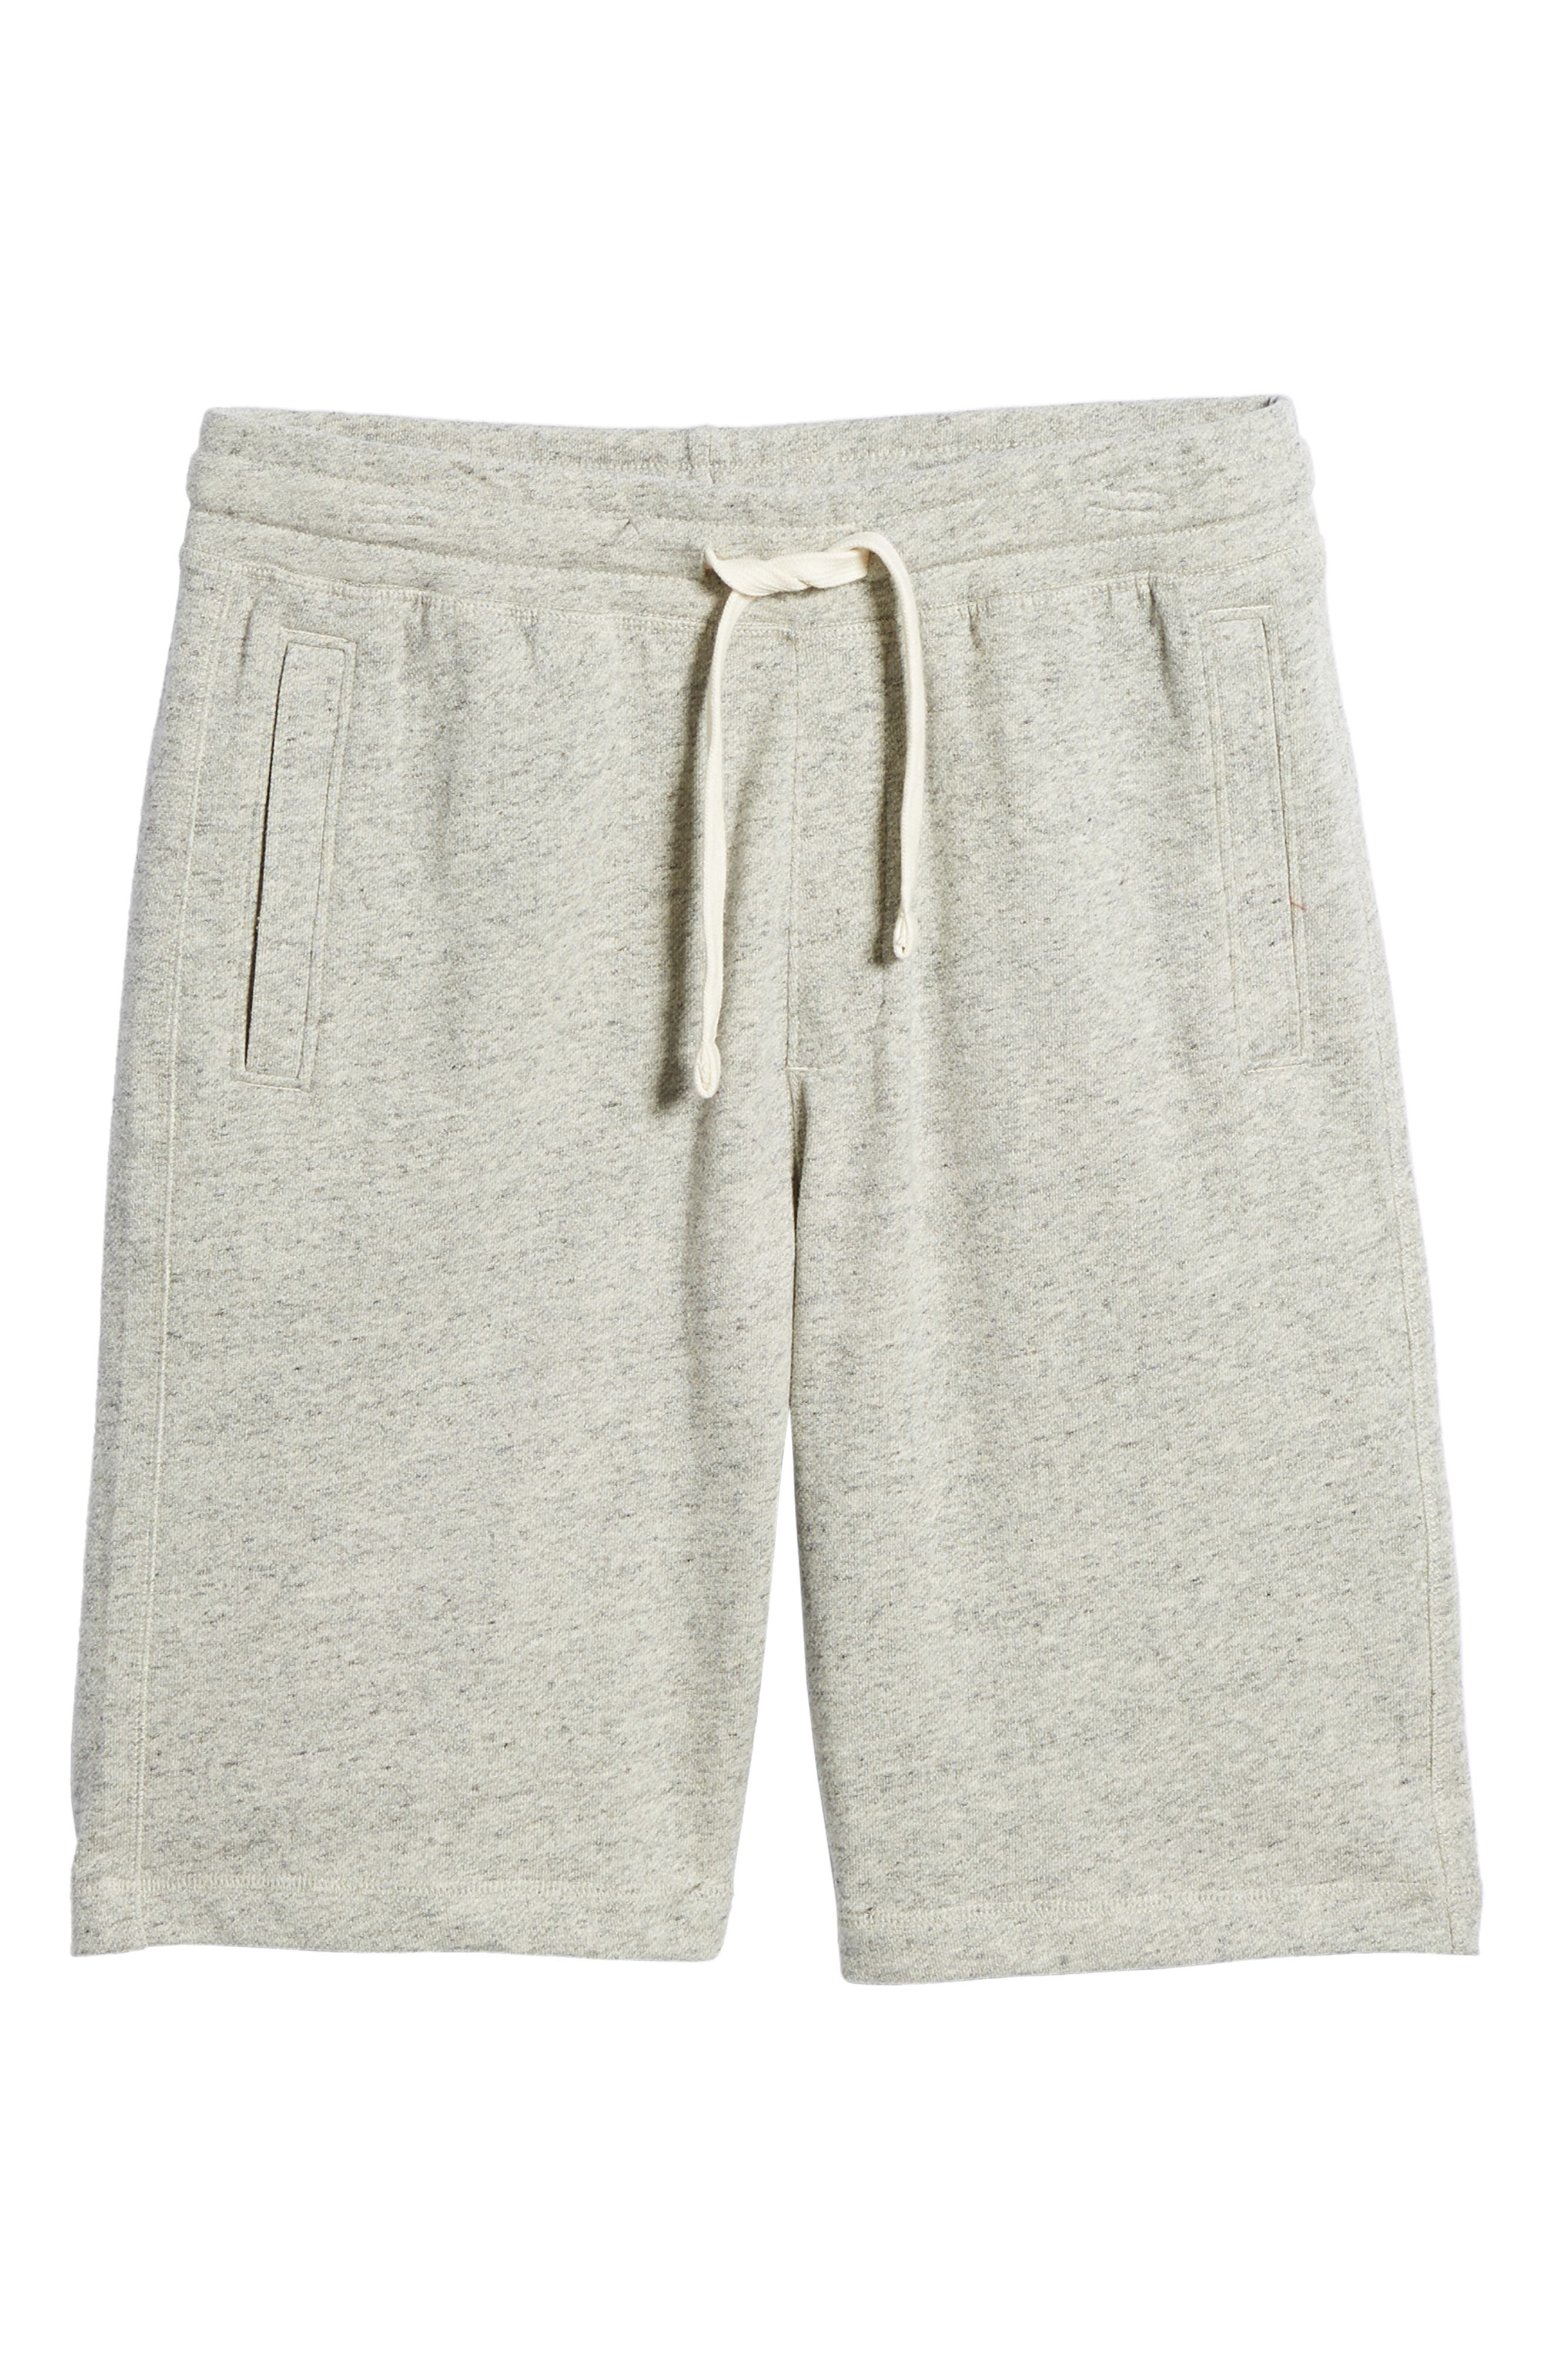 Stretch Cotton Terry Shorts,                             Alternate thumbnail 6, color,                             Grey Heather